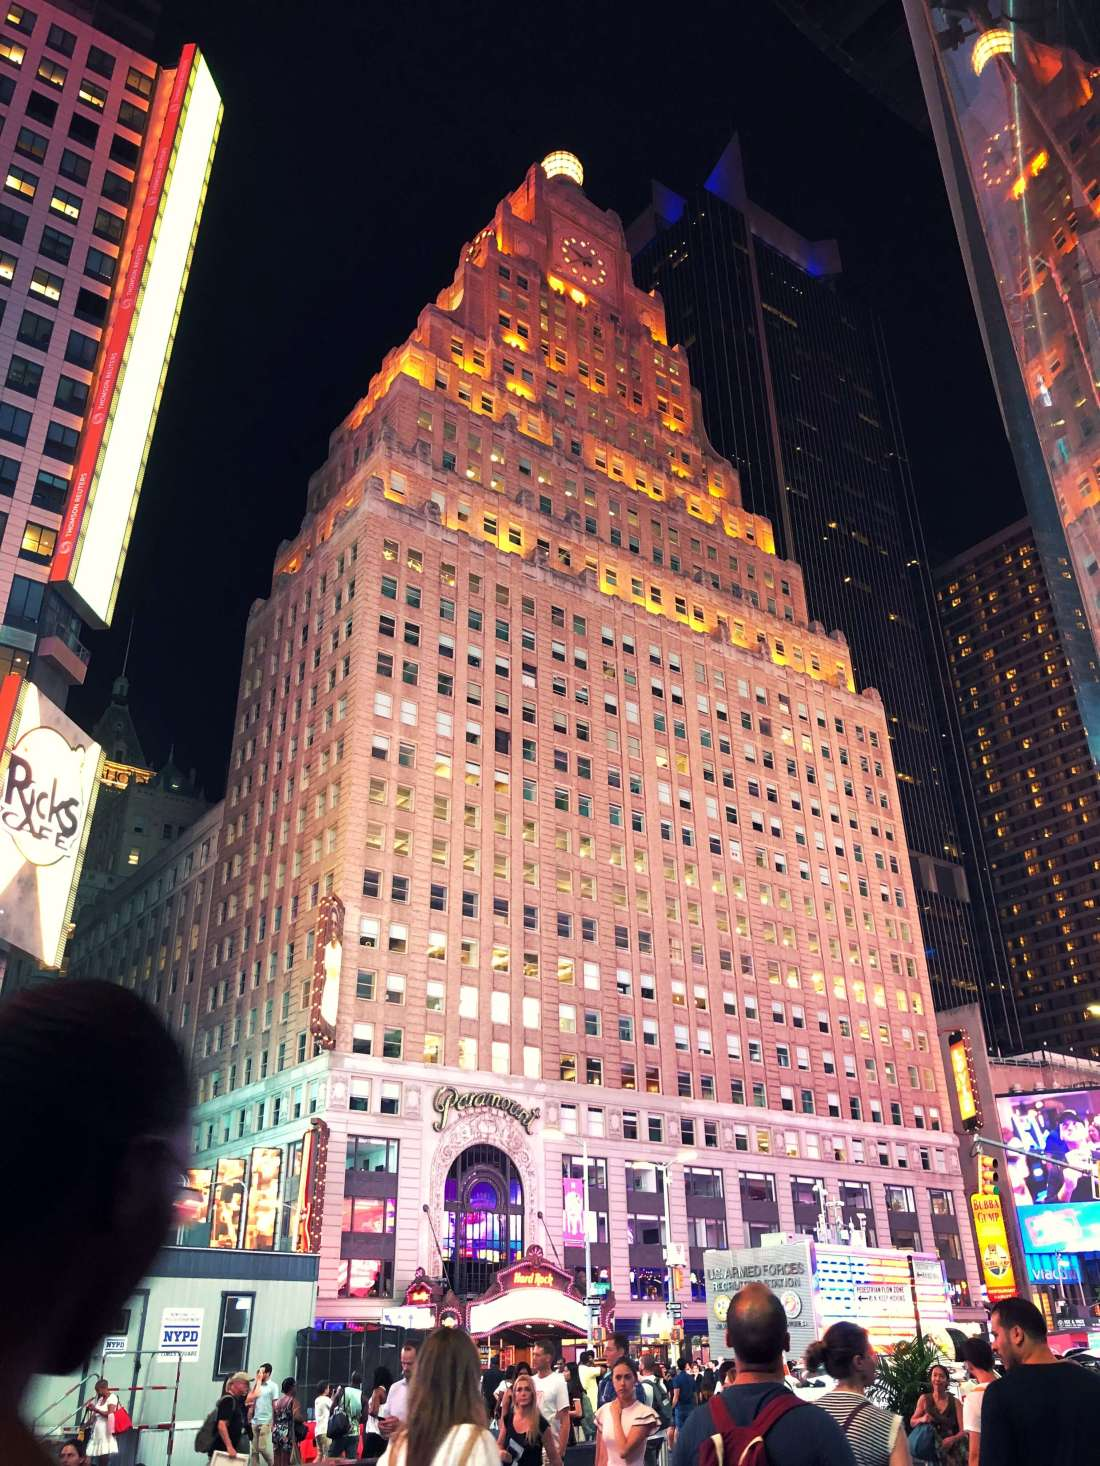 Paramount building in New York City